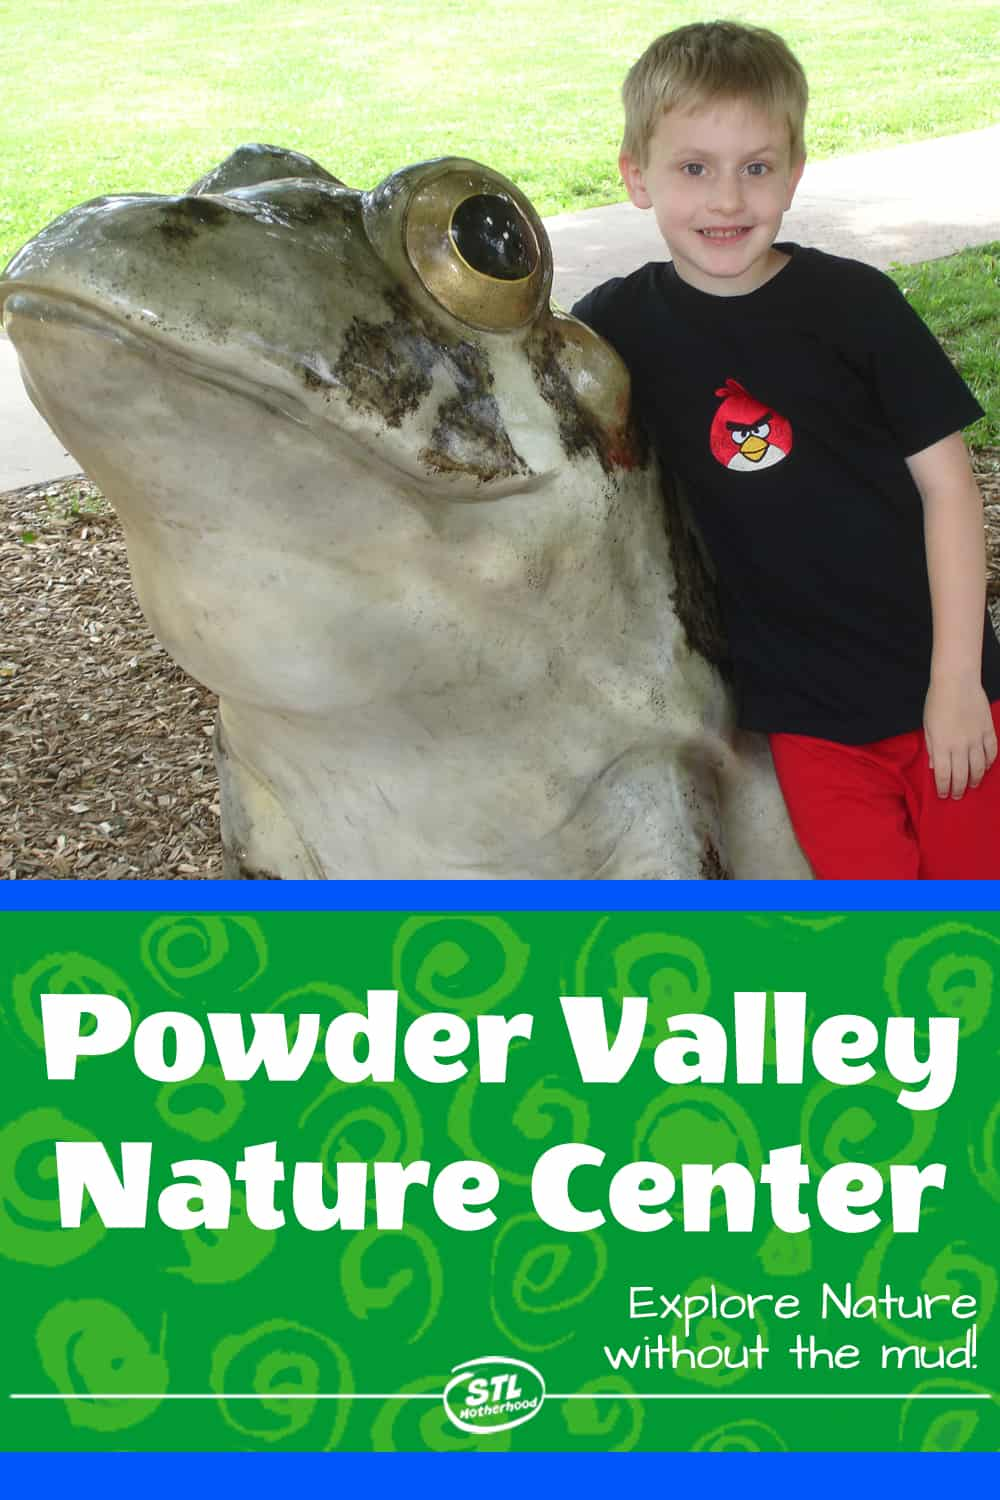 kid with frog statue at Powder Valley